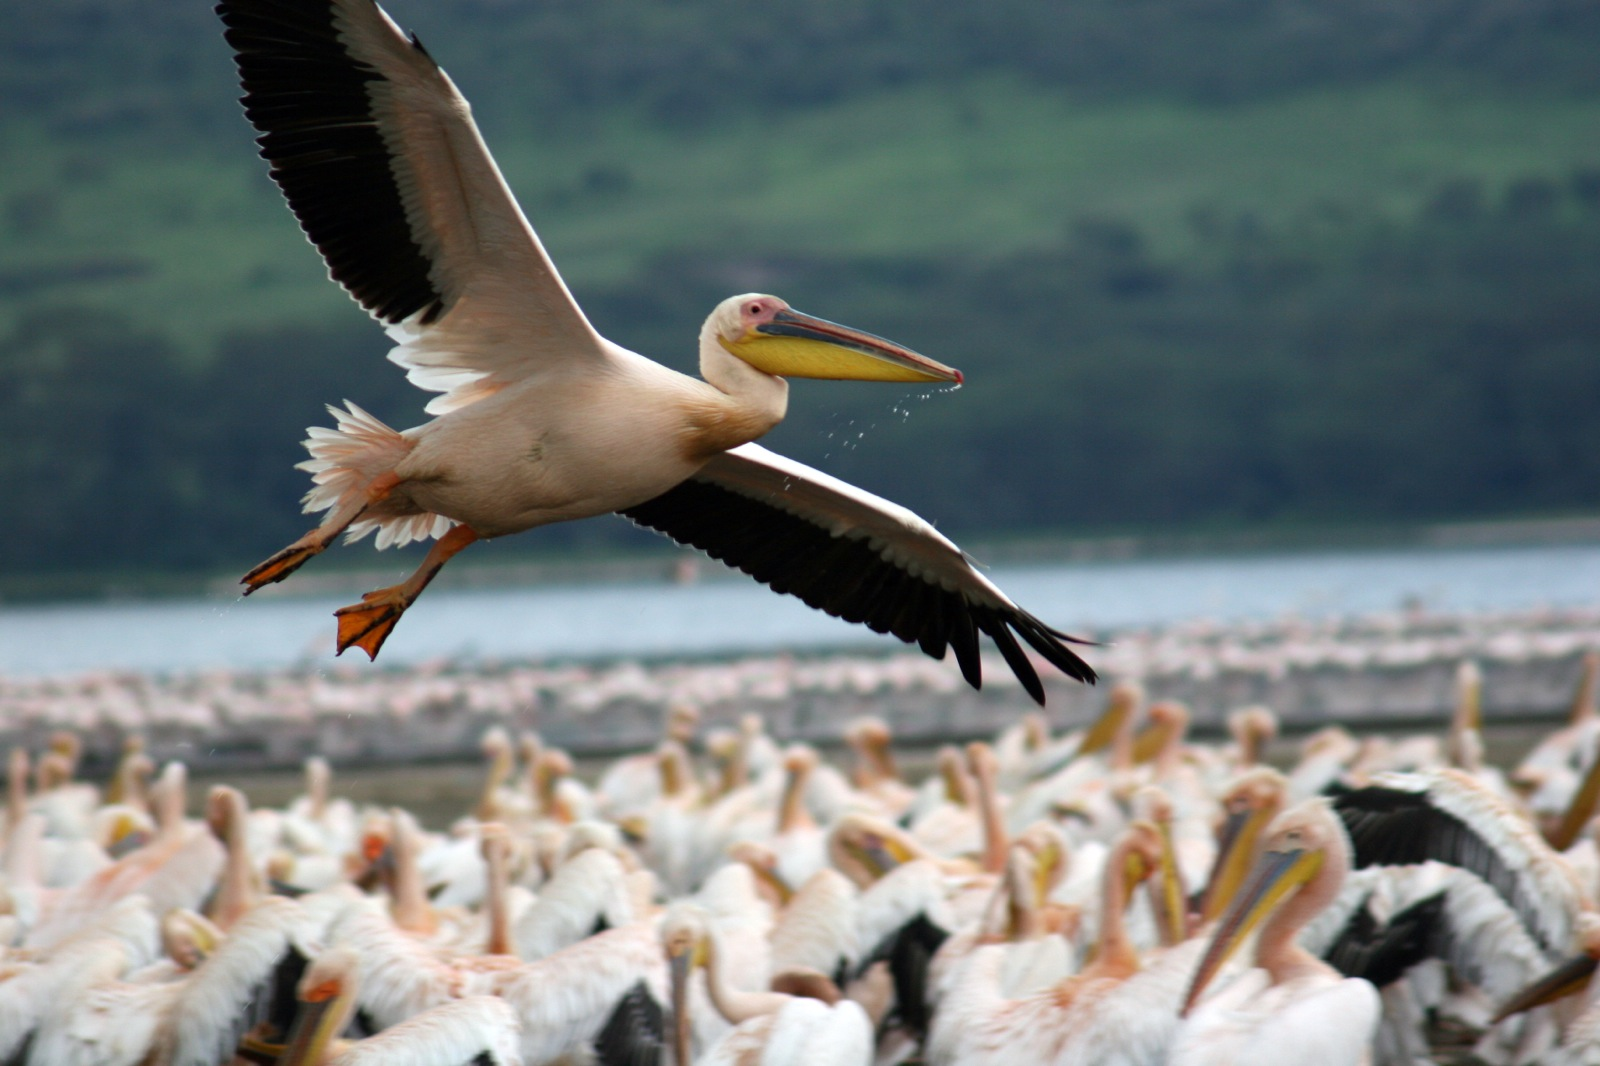 A pelican flies over a group of hundreds of pelicans as it lands on a lake at Nakuru National Park.